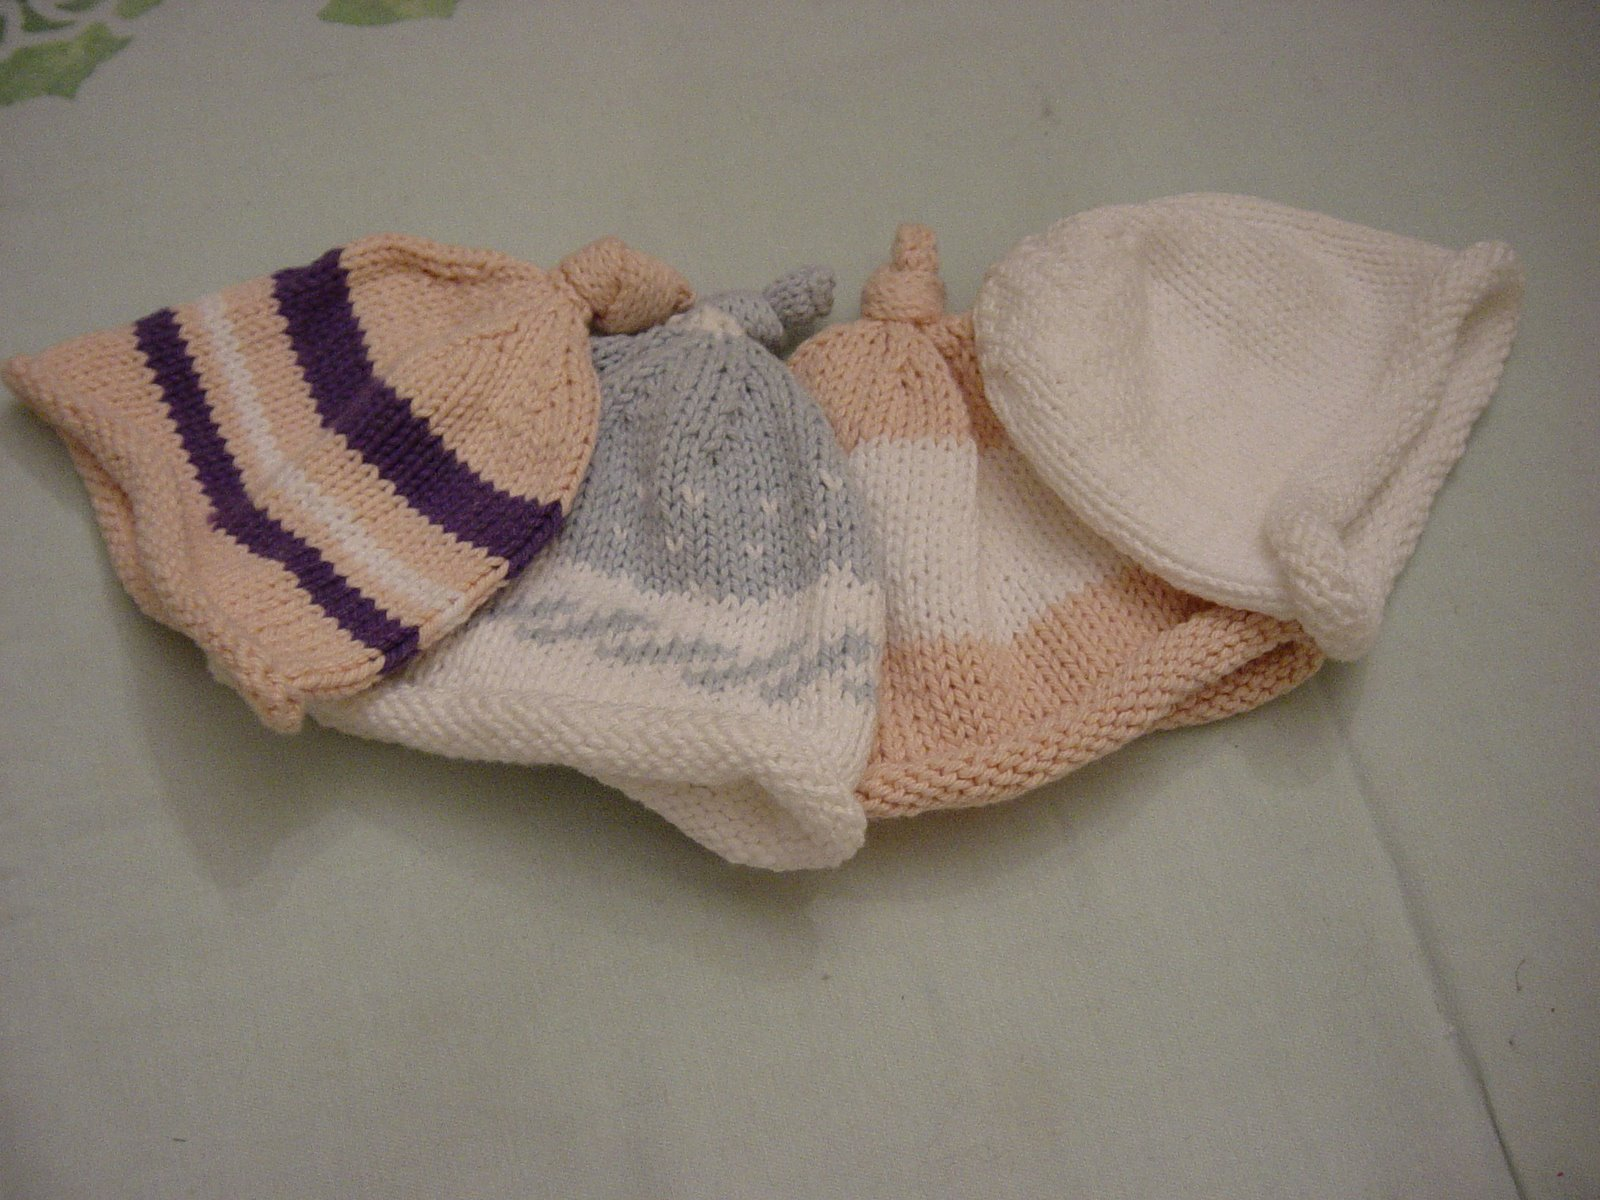 [Rowan+cotton+baby+hats+]